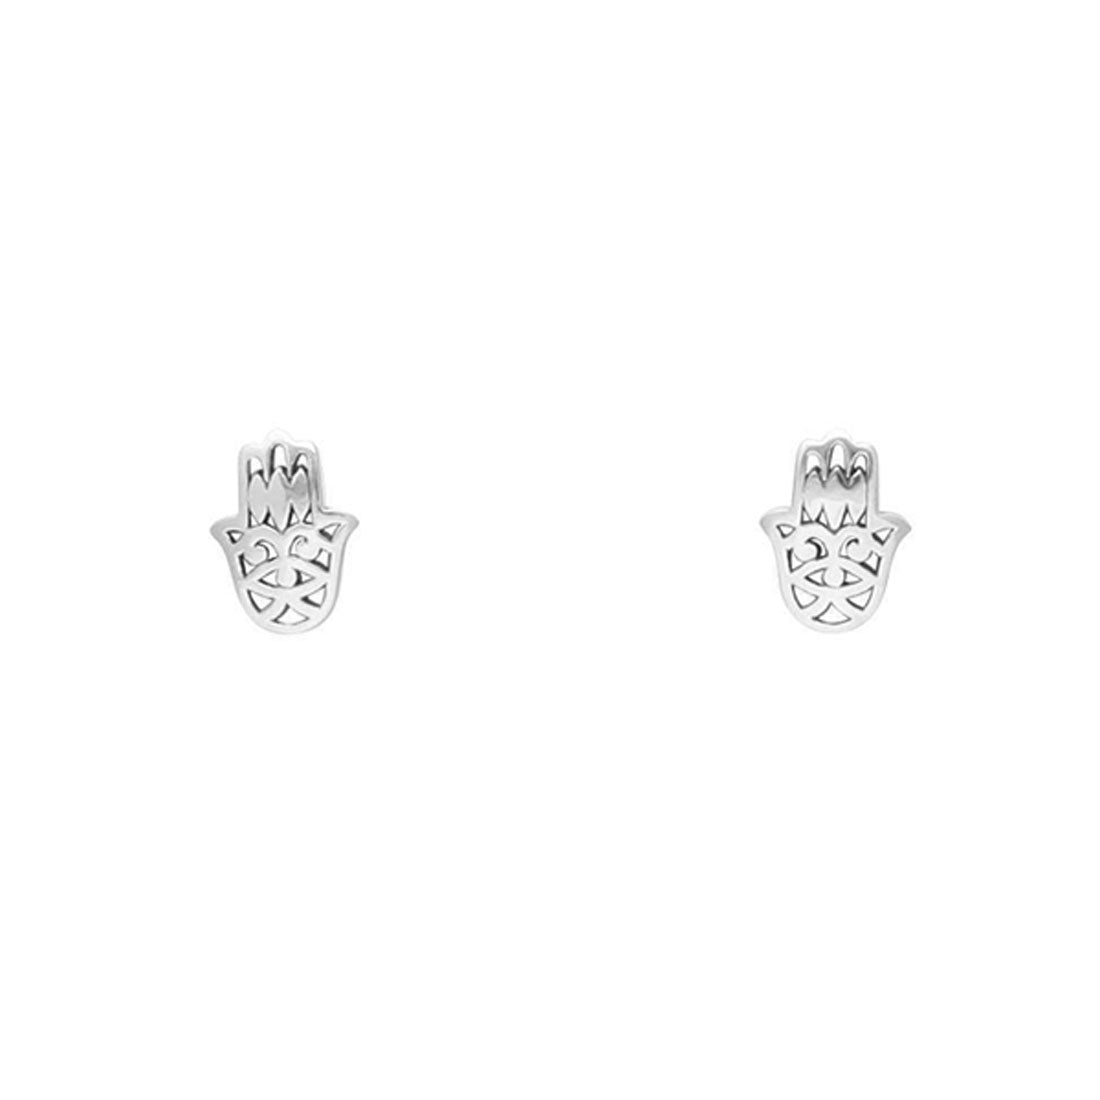 Midsummer Star Earrings Hamsa Hand Studs